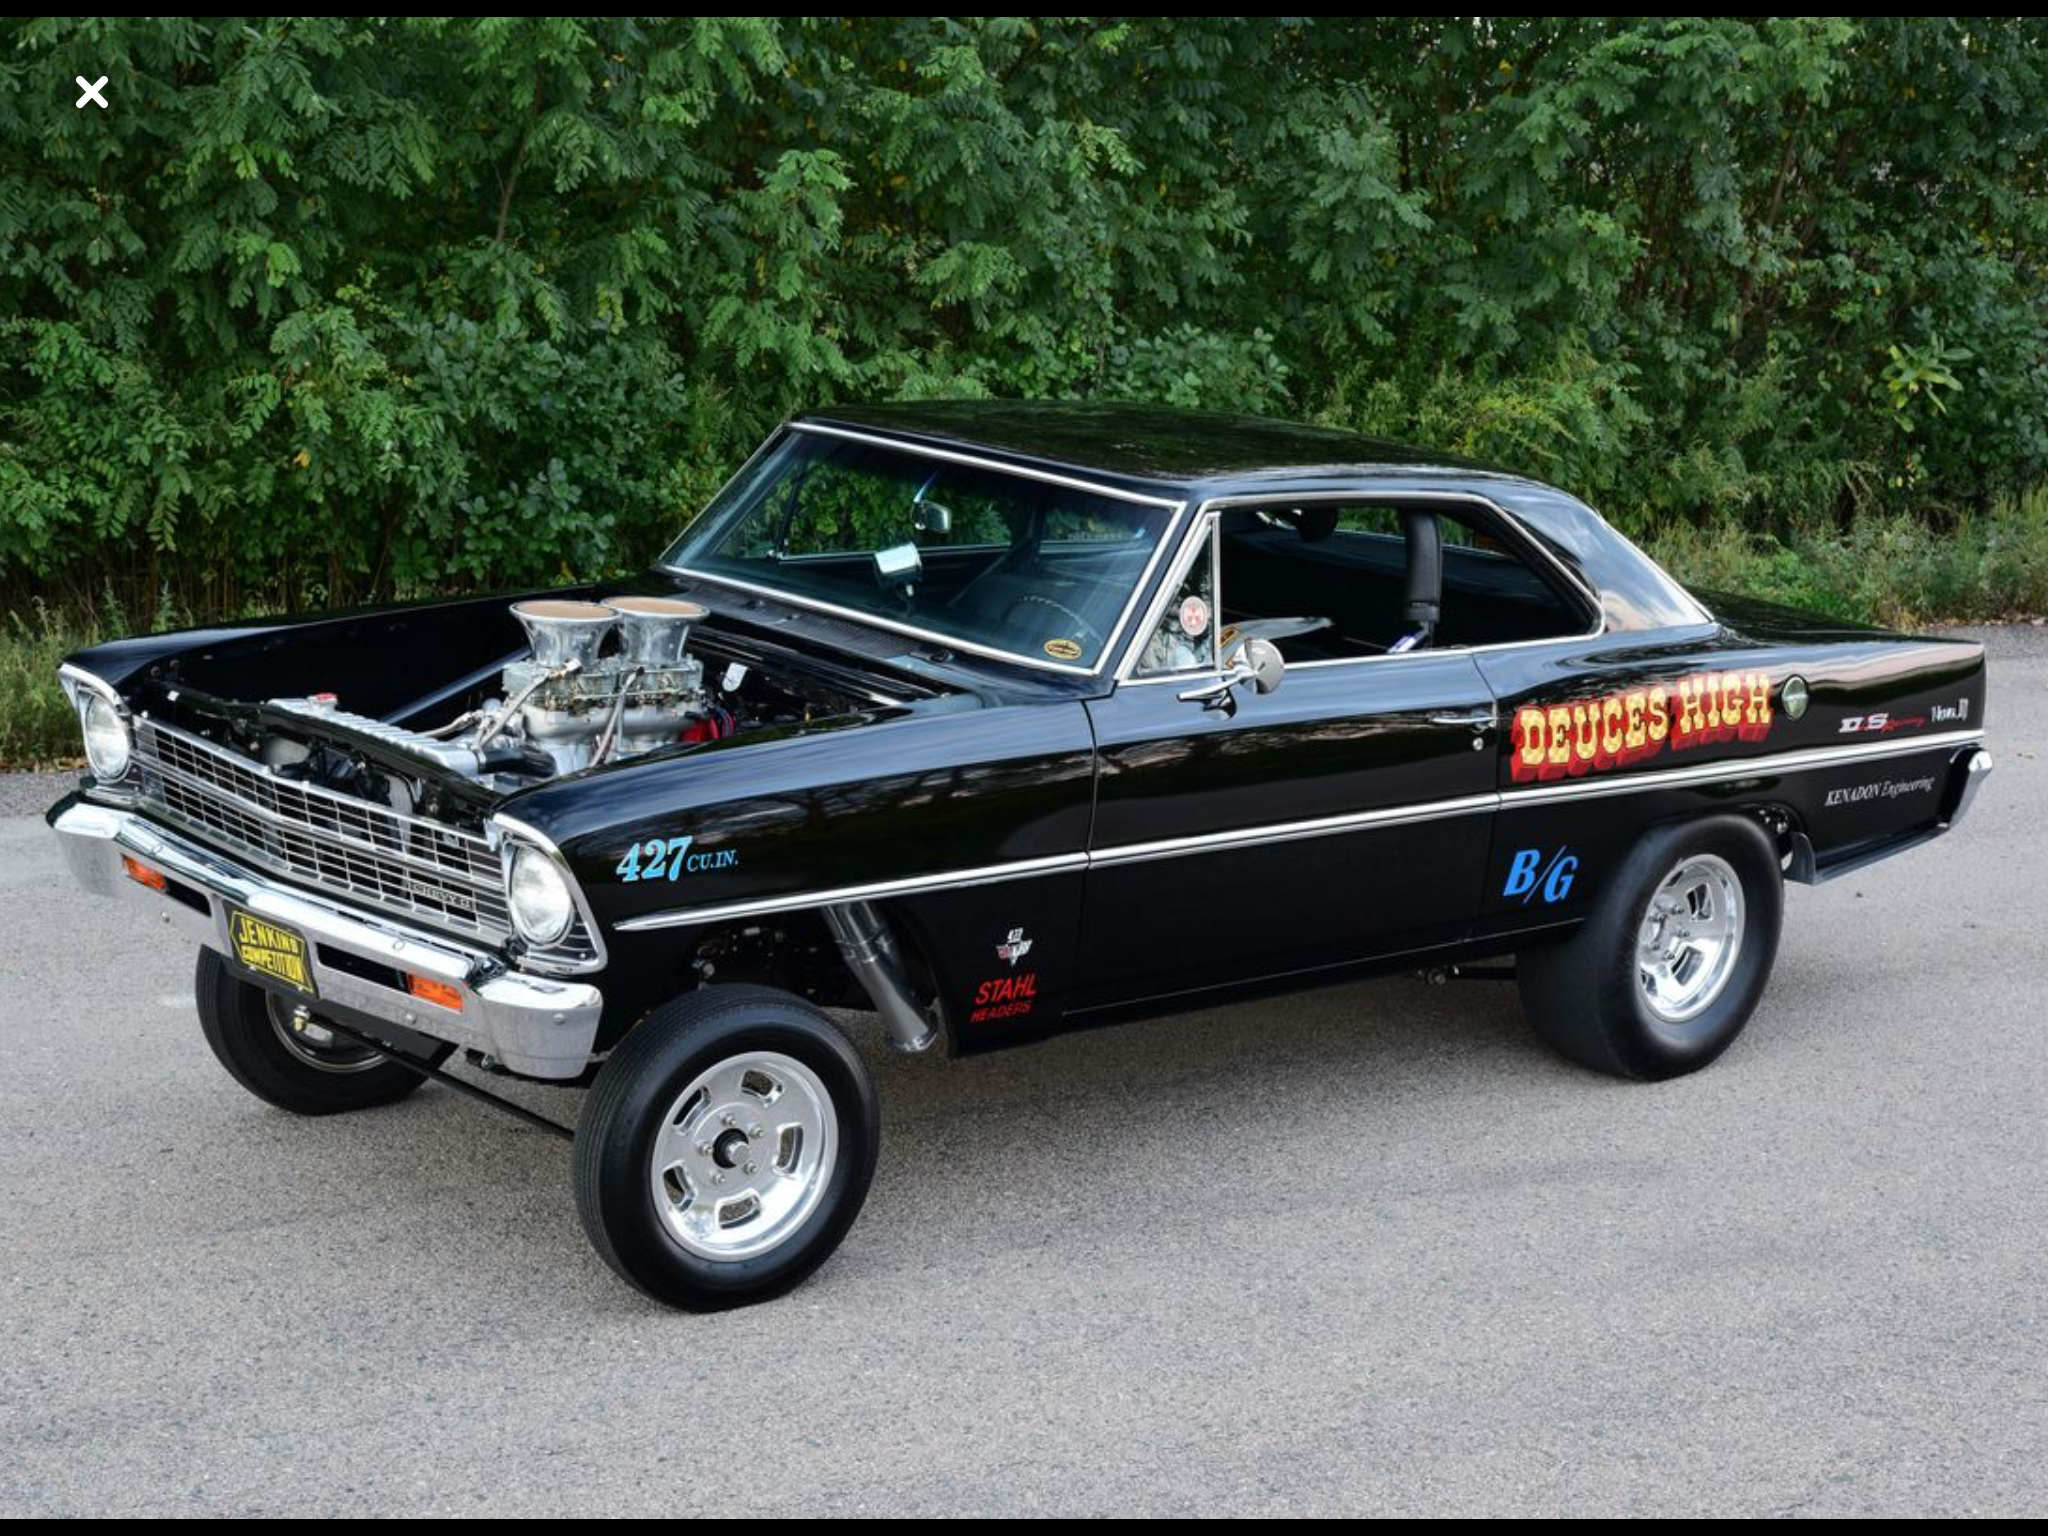 Pin by al heckler on cars | Cars, Chevy nova, Muscle cars